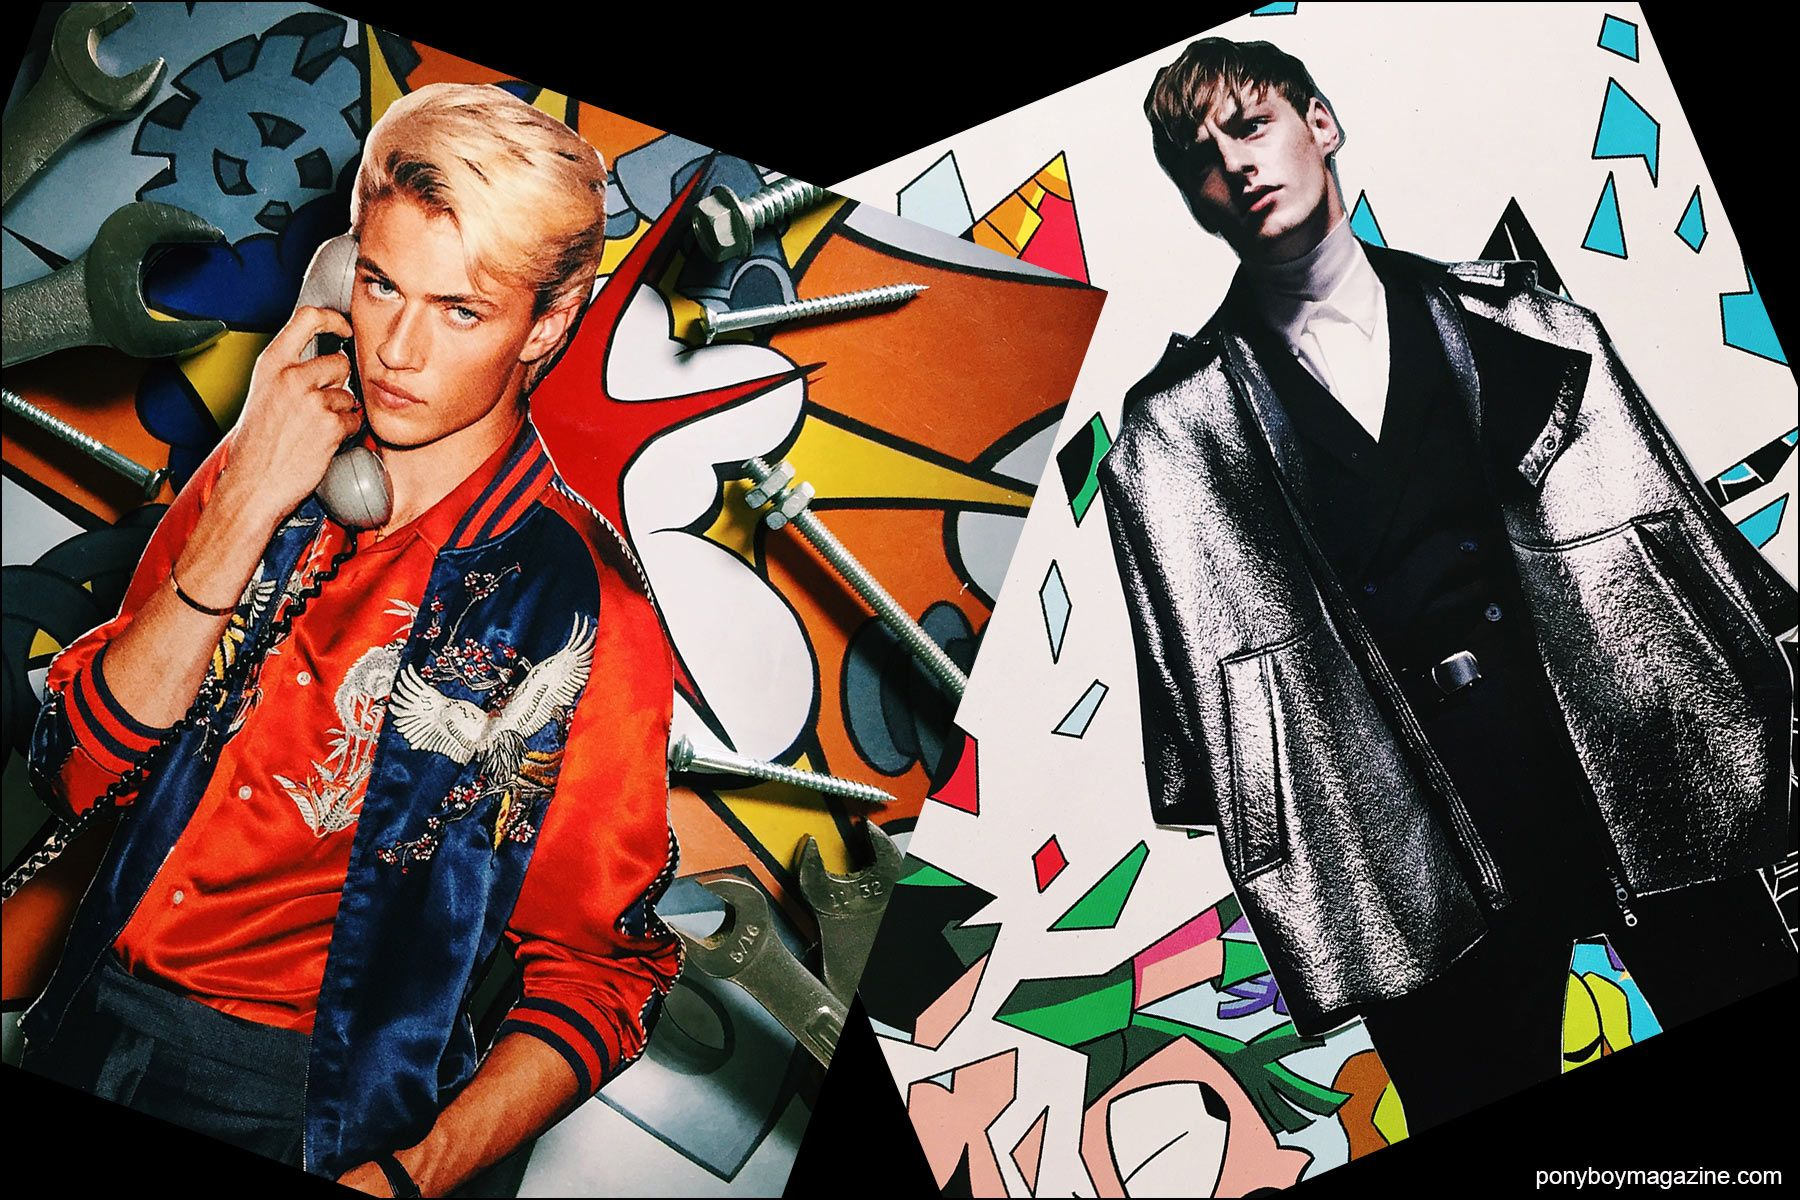 Collage artwork of Lucky Blue and Roberto Sipos images by Patrick Keohane for RS Theory. Ponyboy magazine NY.